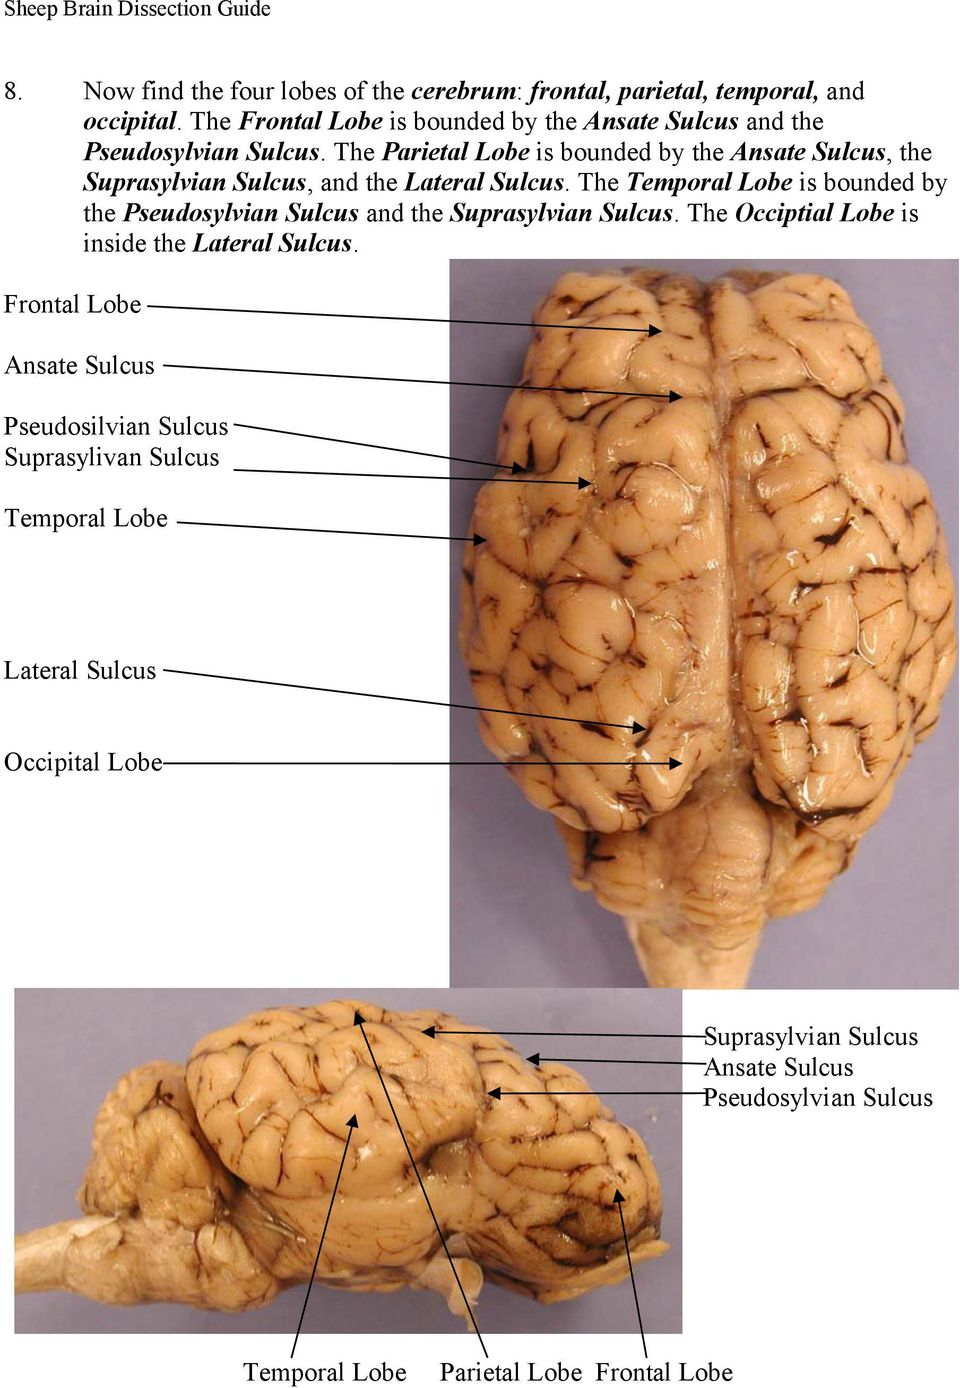 The Parietal Lobe is bounded by the Ansate Sulcus, the Suprasylvian Sulcus, and the Lateral Sulcus.